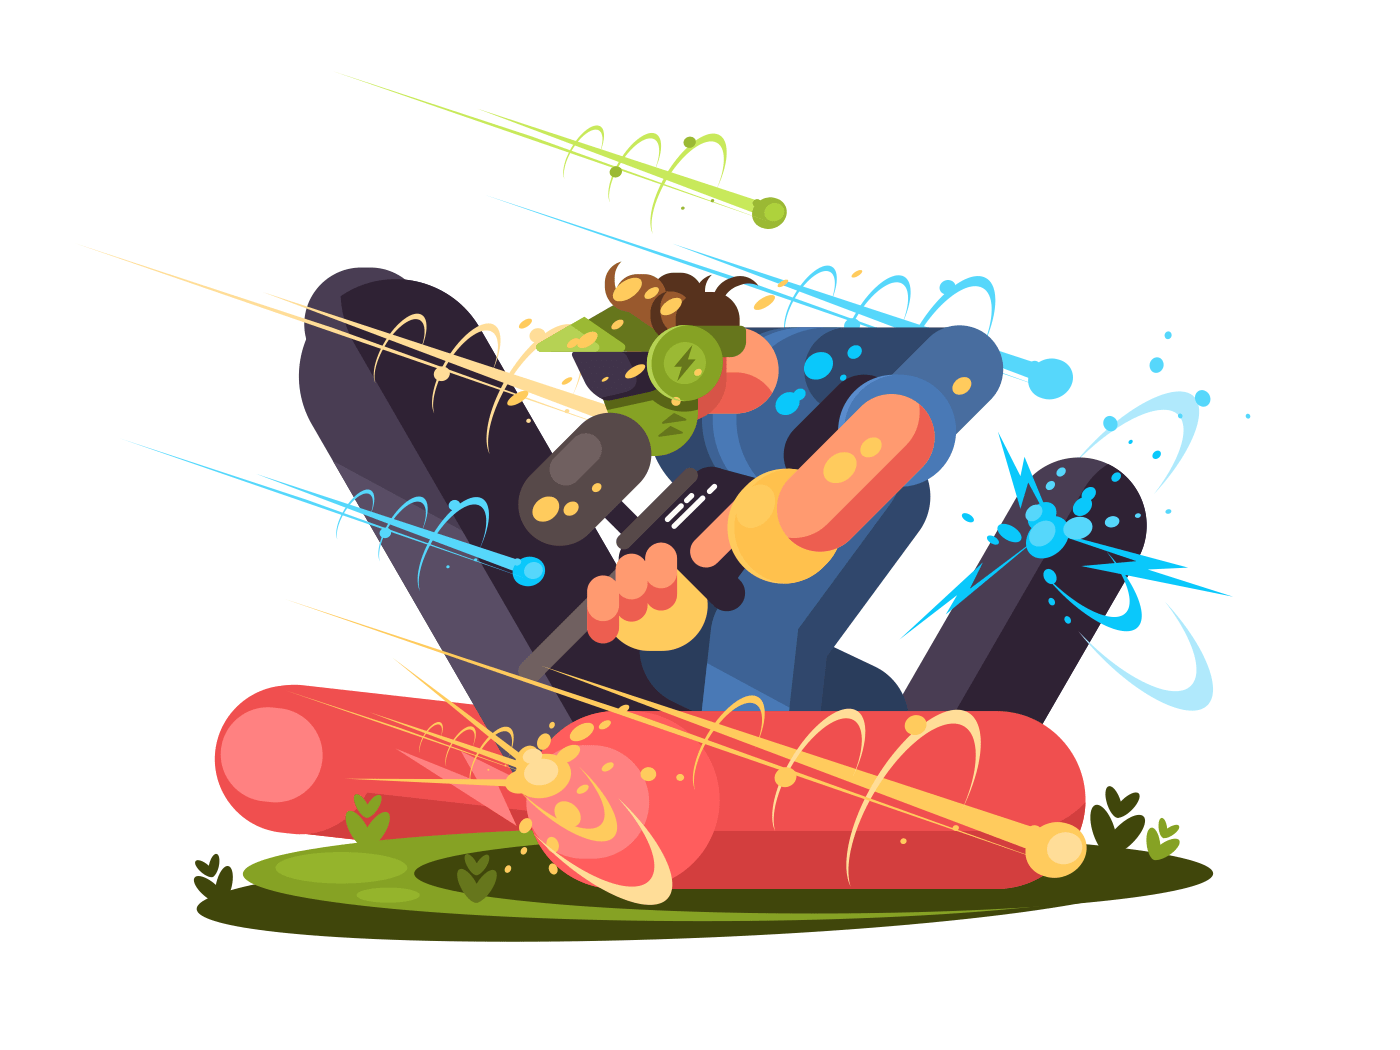 Guy with guns and wearing mask plays paintball. Vector illustration